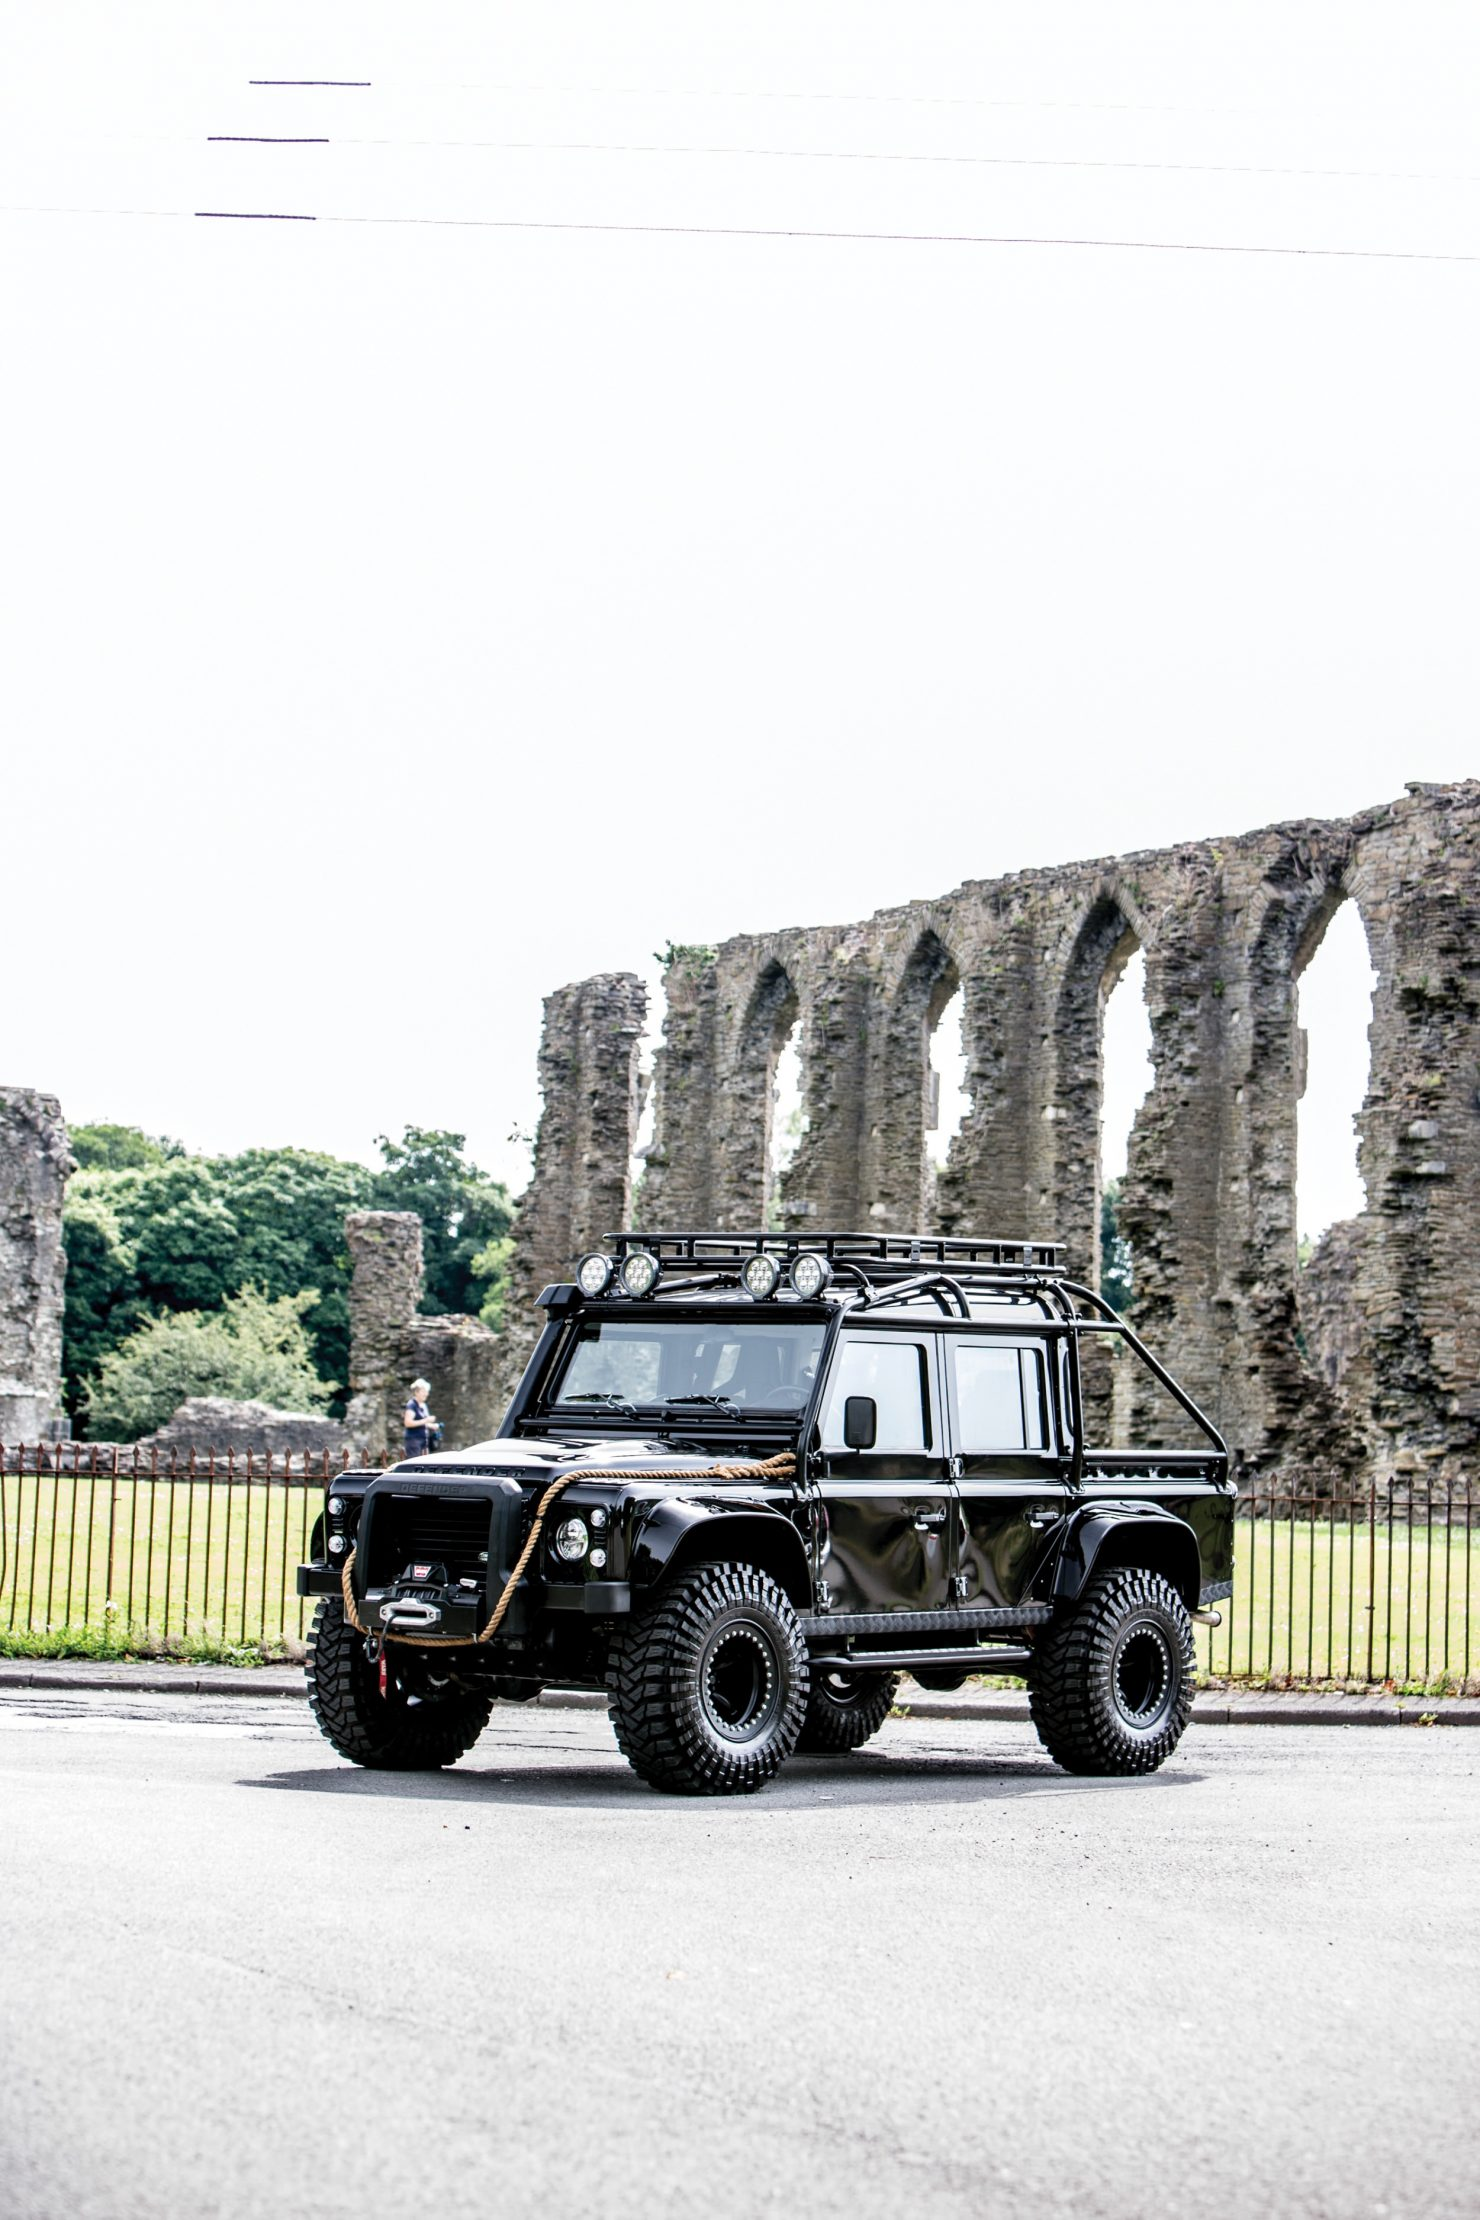 james bond spectre land rover defender svx 1 1480x2220 - Ex-James Bond Spectre - Land Rover Defender SVX